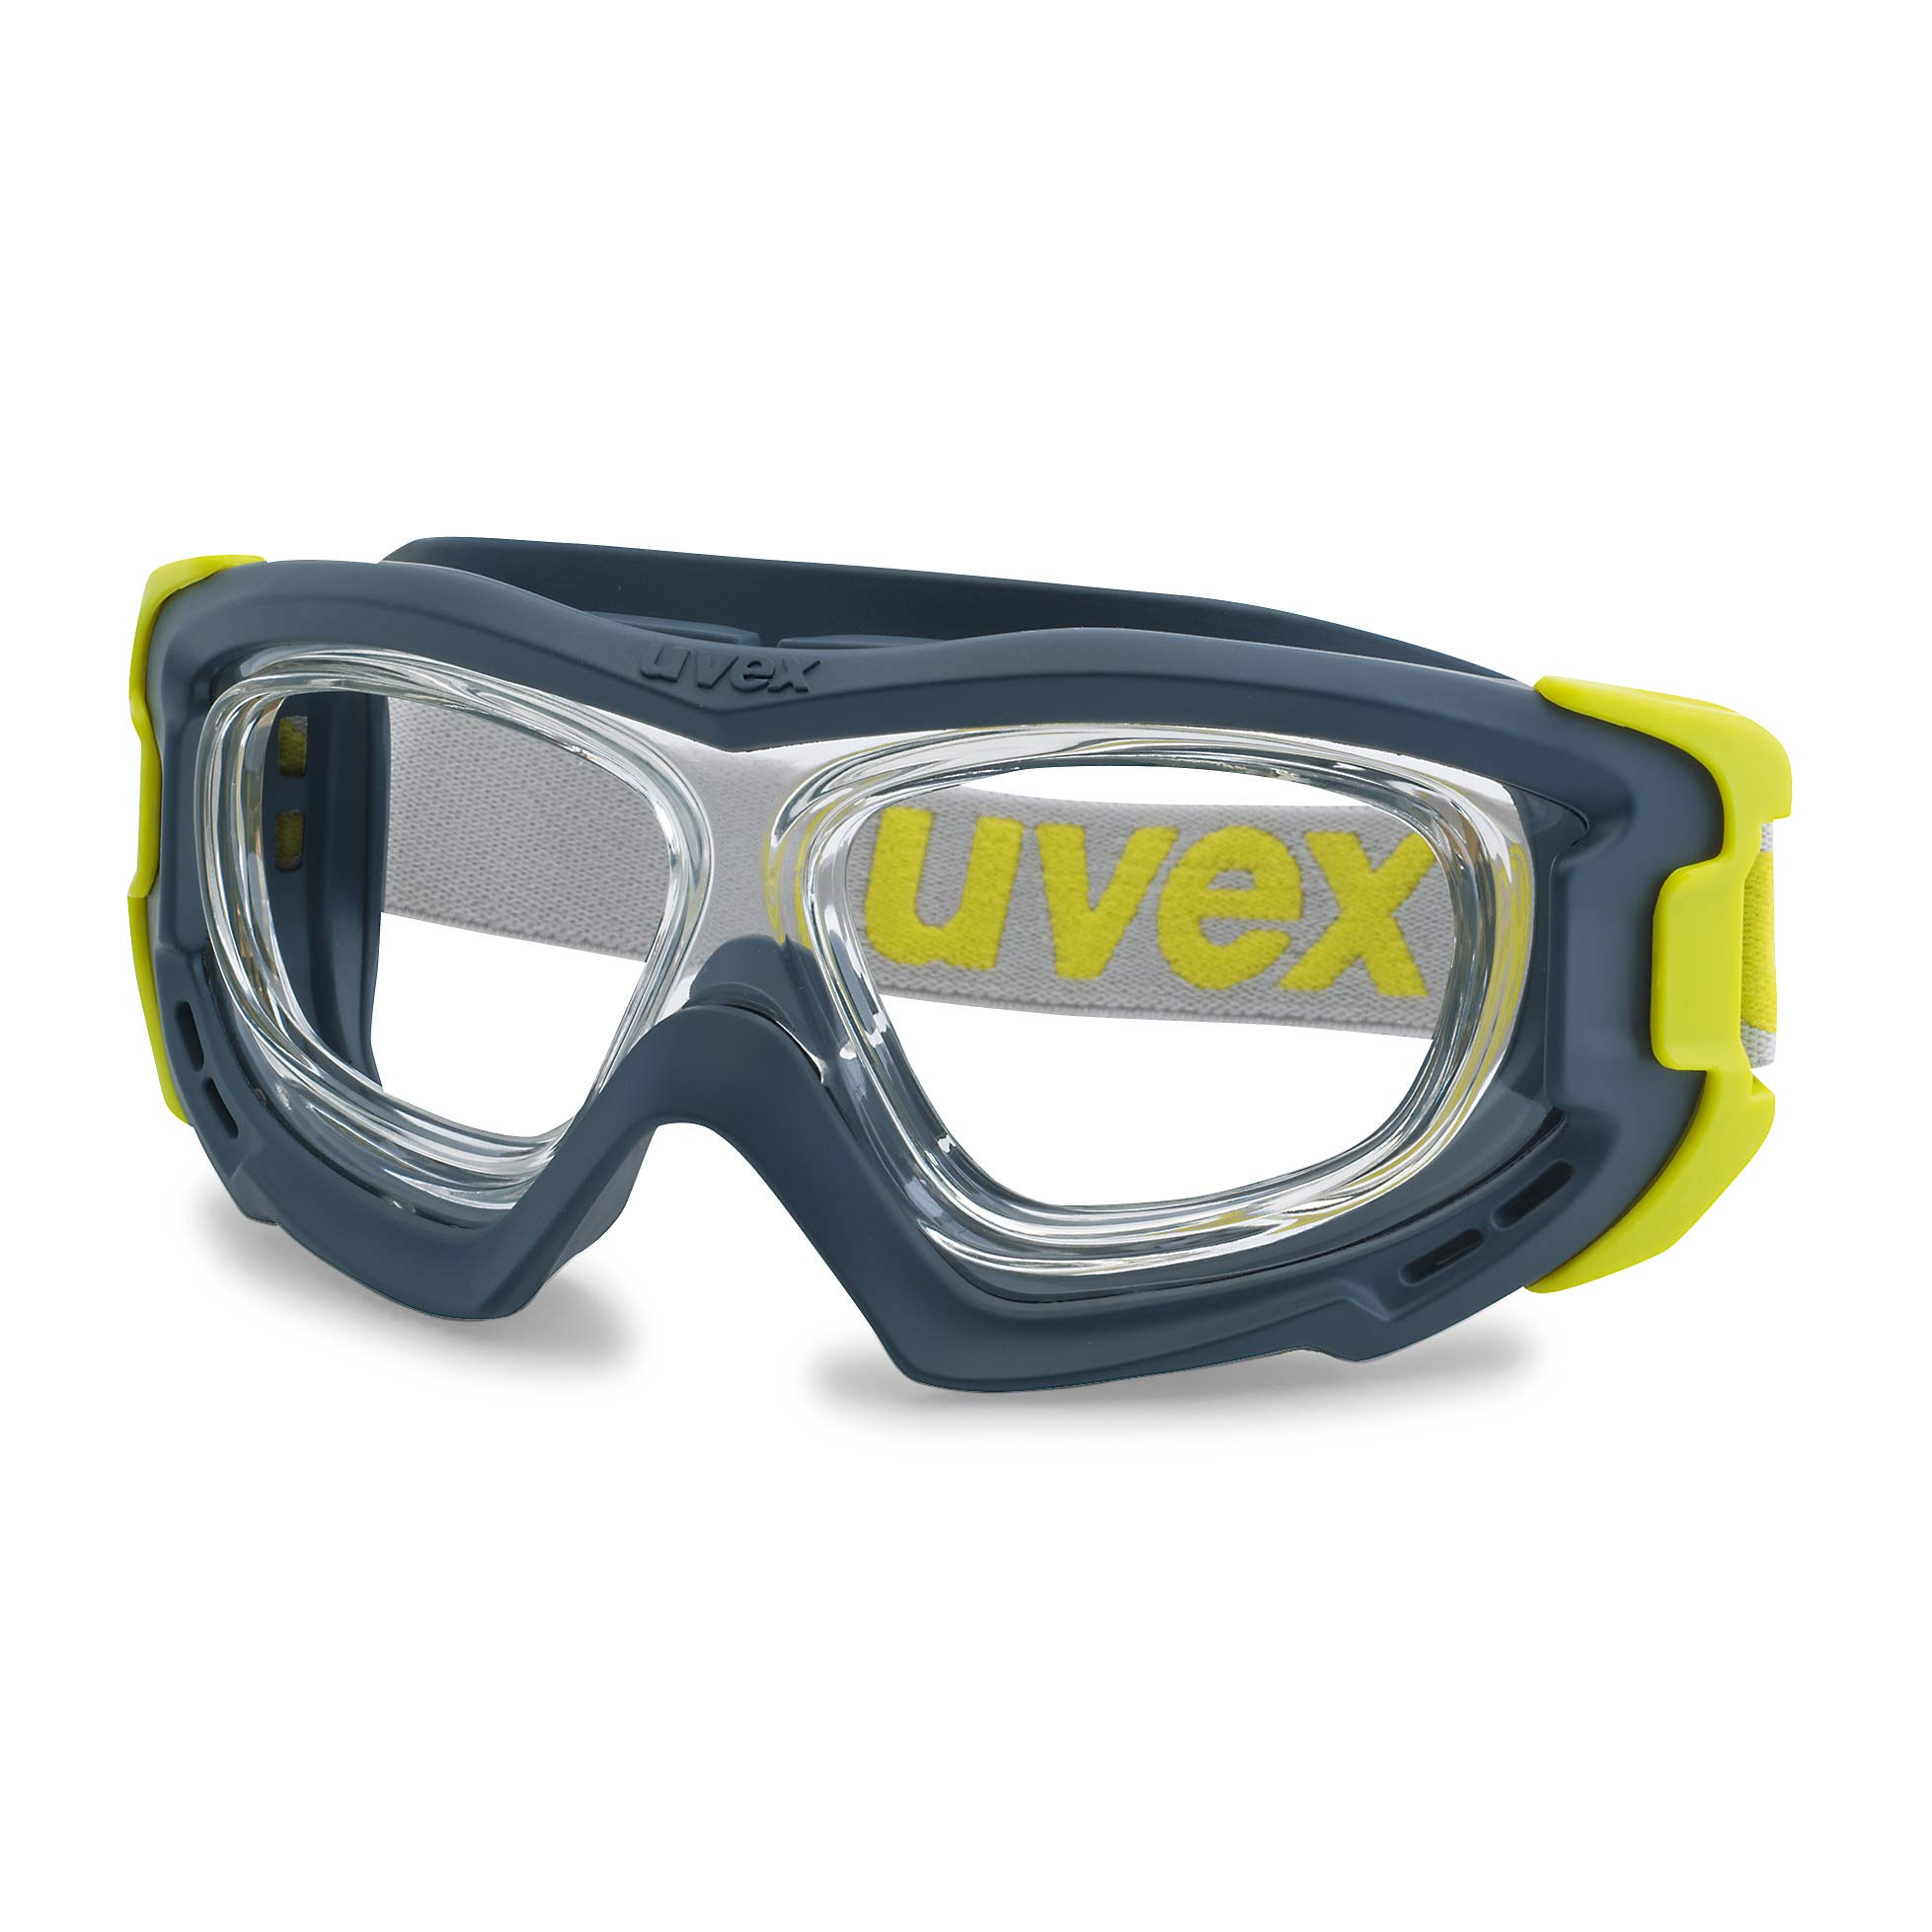 Uvex Rx Goggle Safety Goggles With Direct Vision